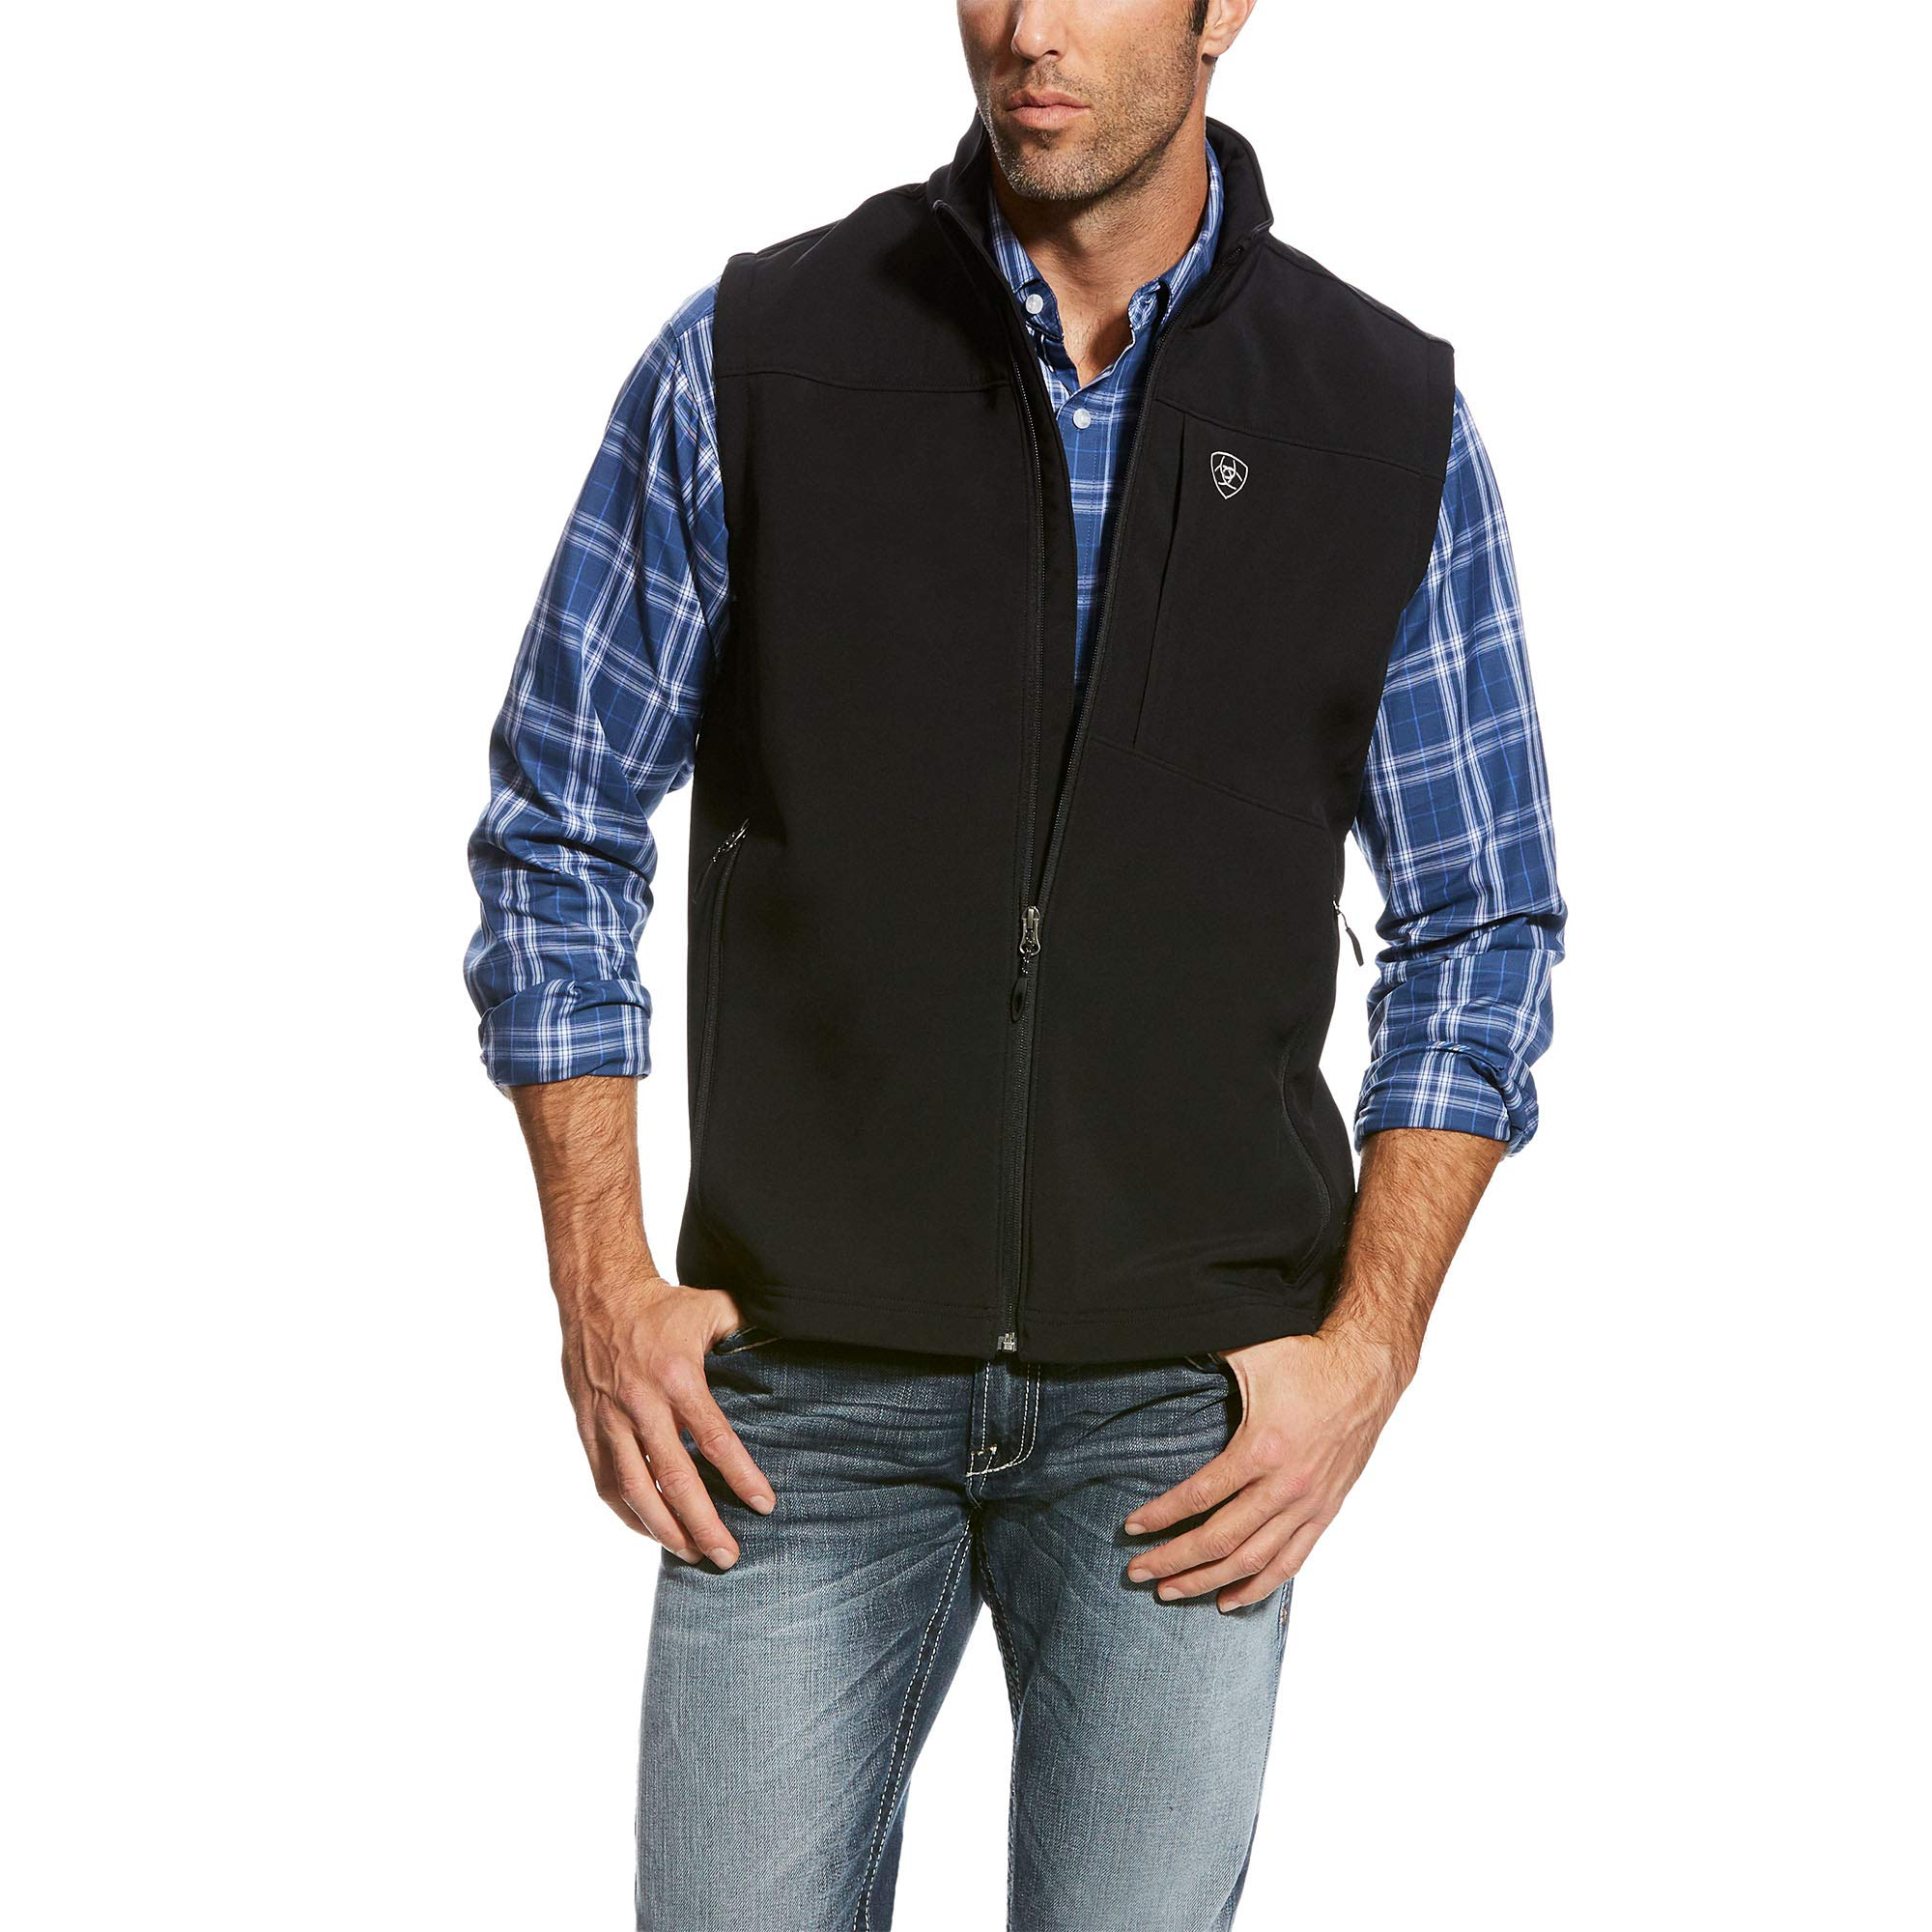 ARIAT Men's Vernon 2.0 Softshell Vest, Black, MED by ARIAT